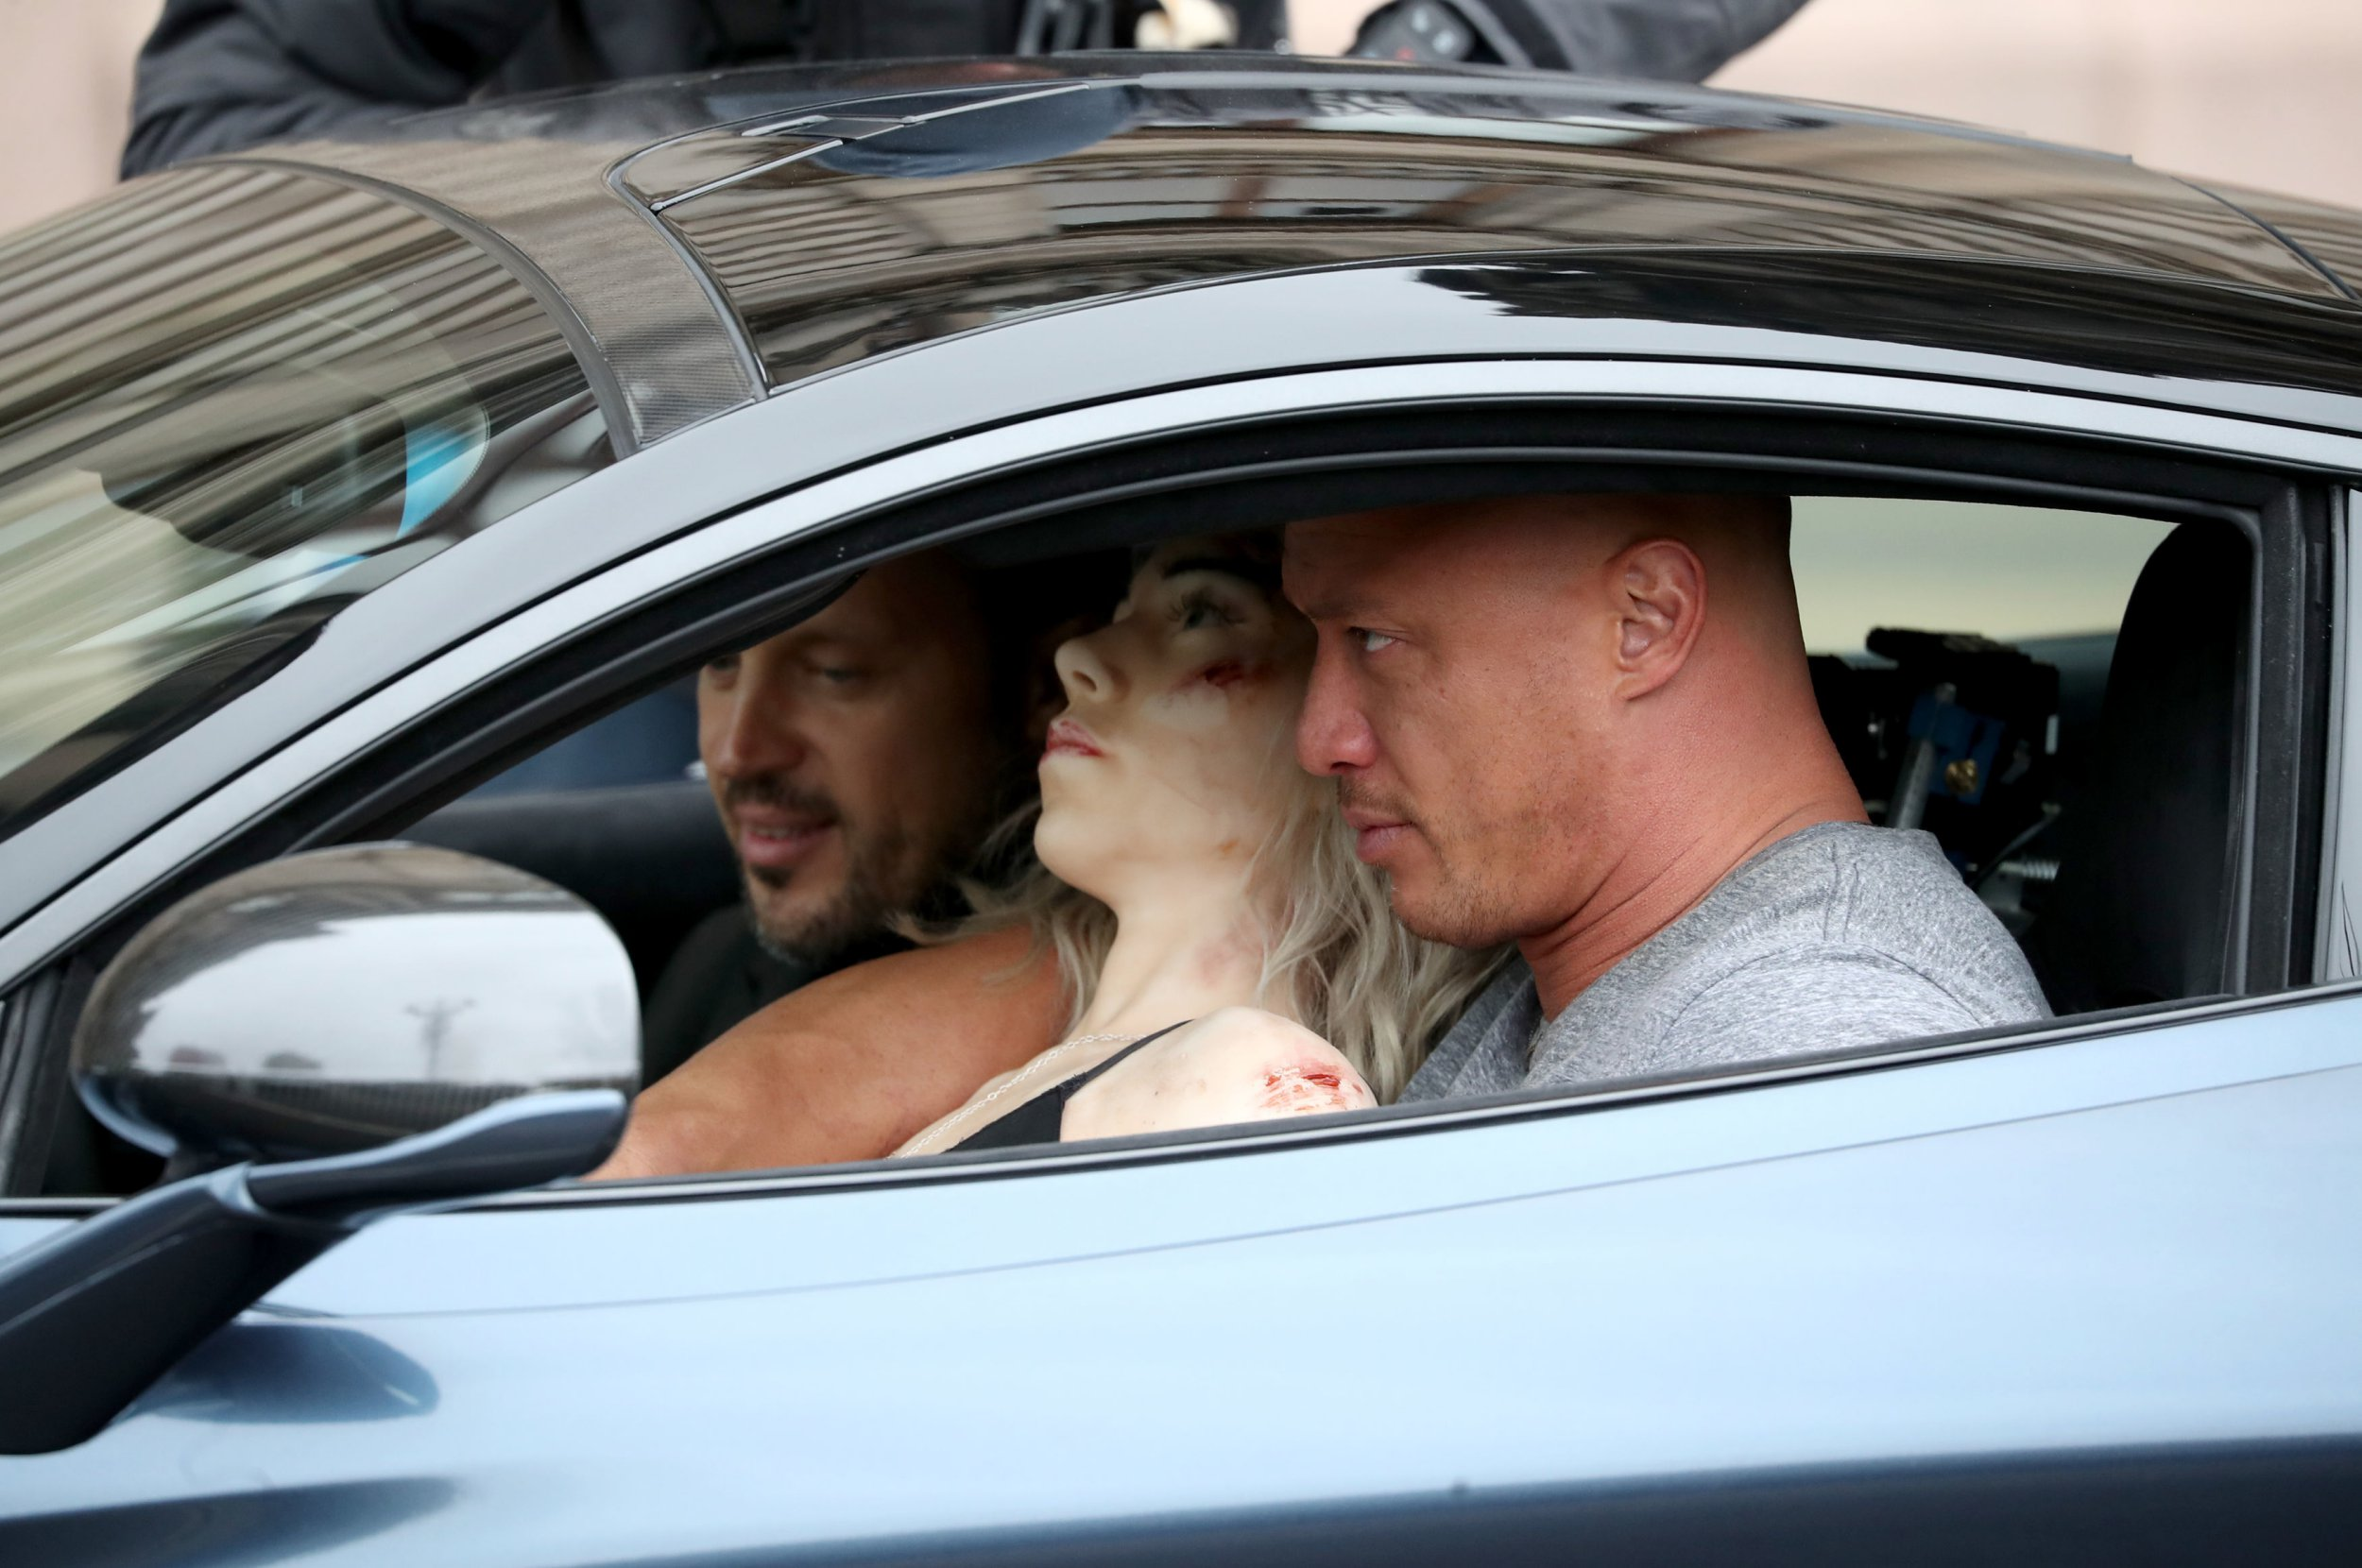 A stunt-double for actor 'The Rock' sits inside a McLaren sports car with a dummy, during filming in Glasgow city centre for a new Fast and Furious franchise movie. PRESS ASSOCIATION Photo. Picture date: Wednesday October 24, 2018. Photo credit should read: Jane Barlow/PA Wire